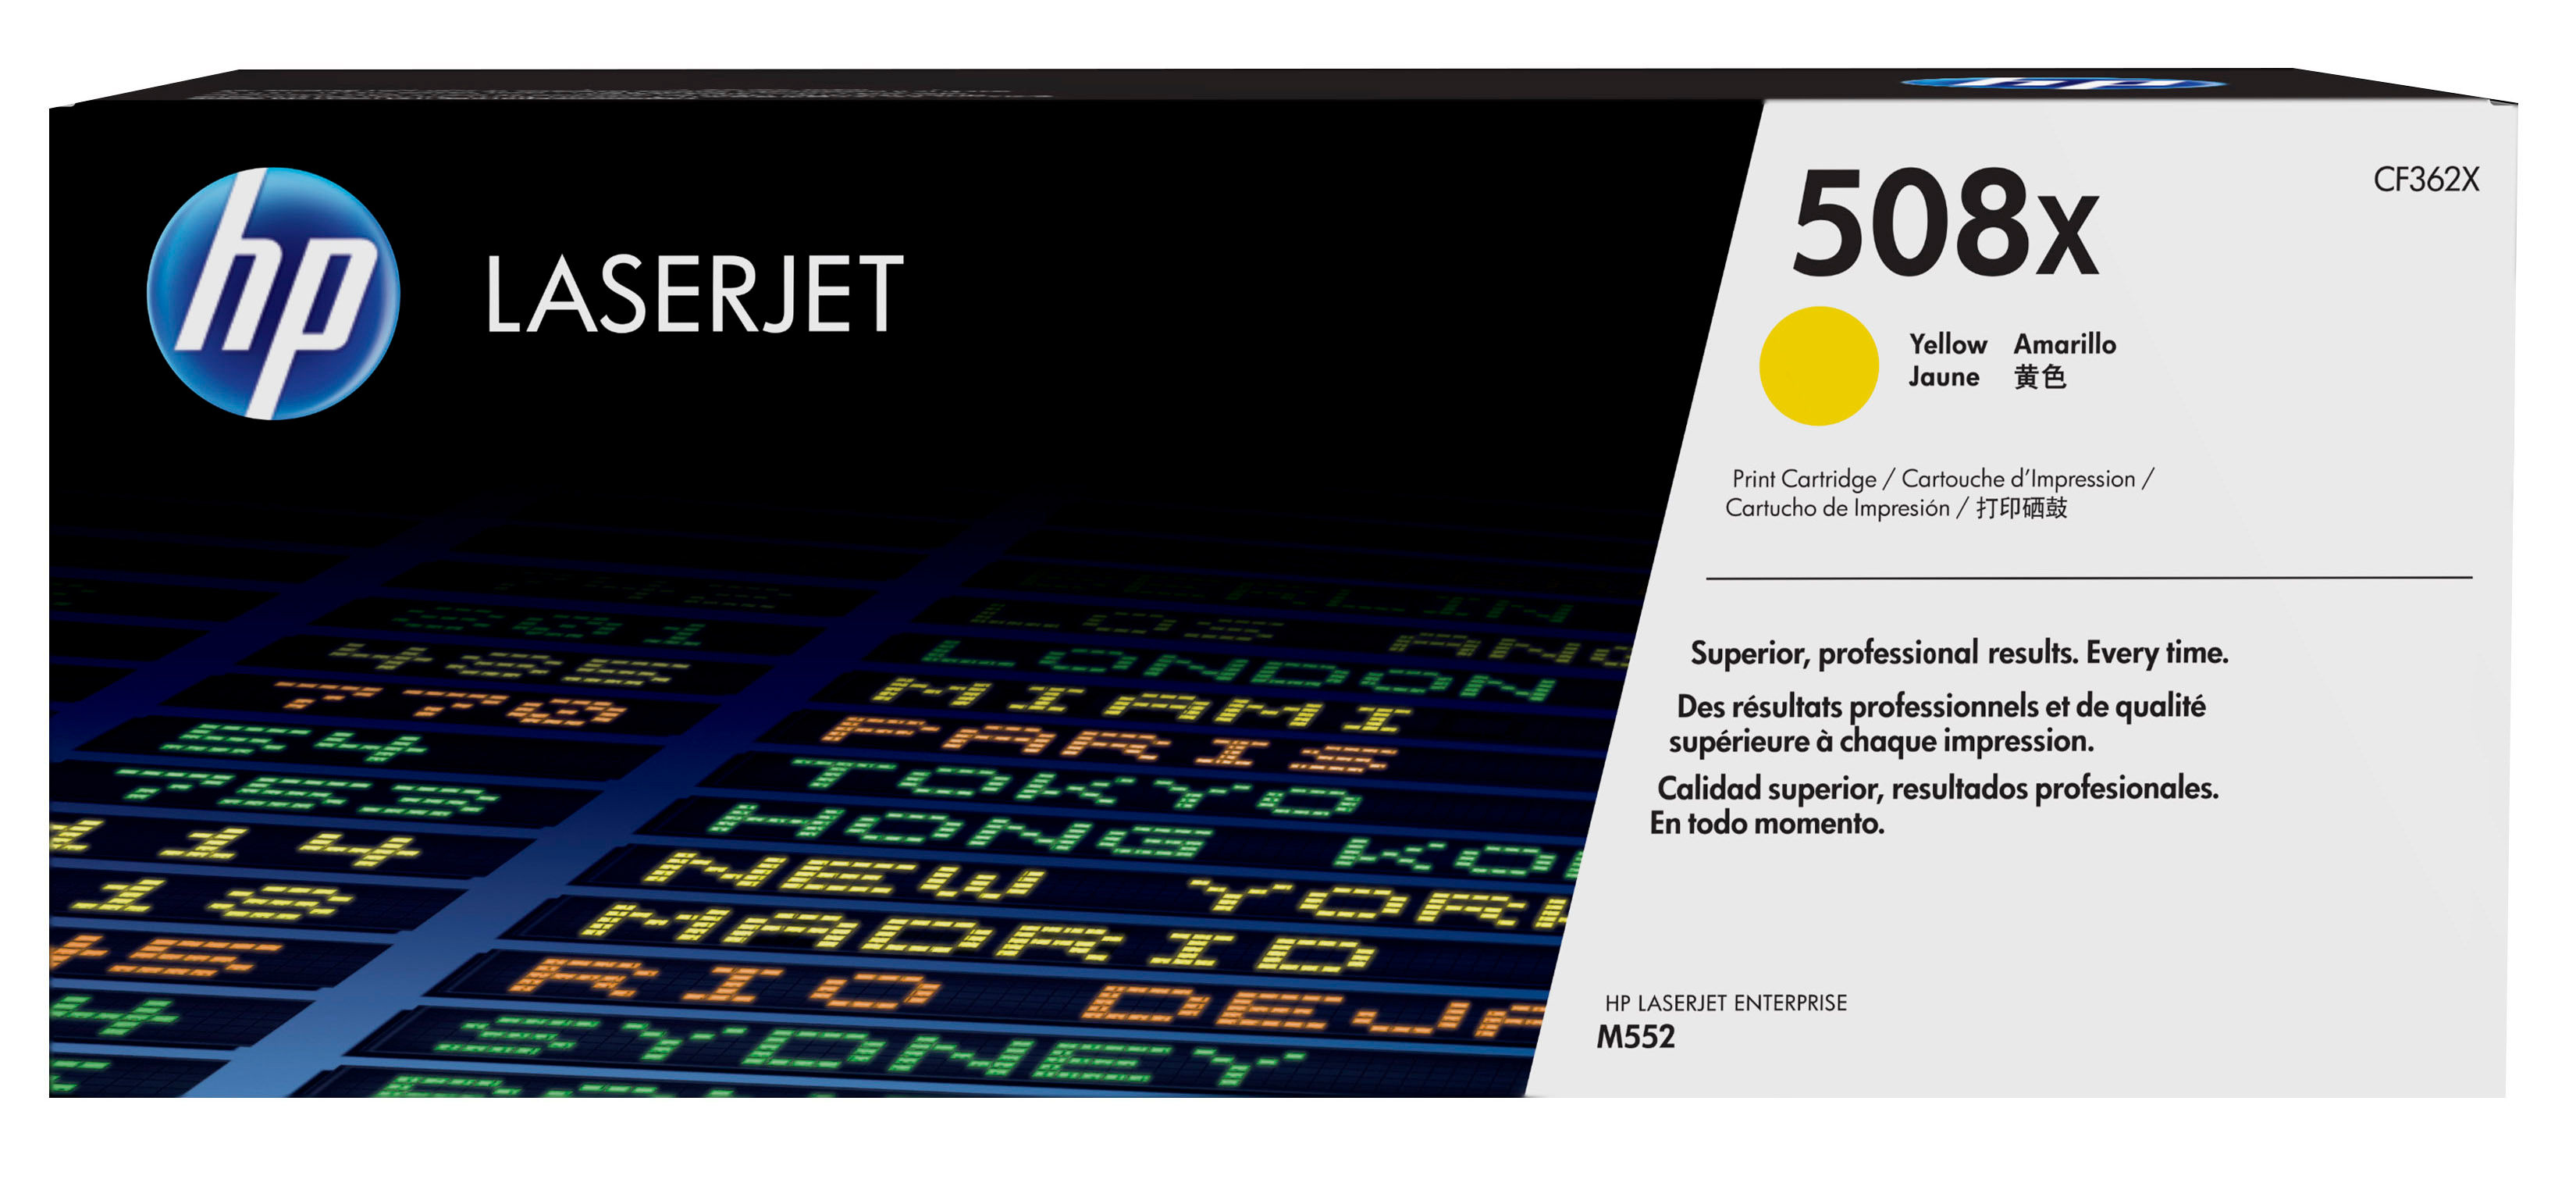 Hpcf362x       Hp 508x Yellow High Yield      Jetintelligence M552/m553                                    - UF01